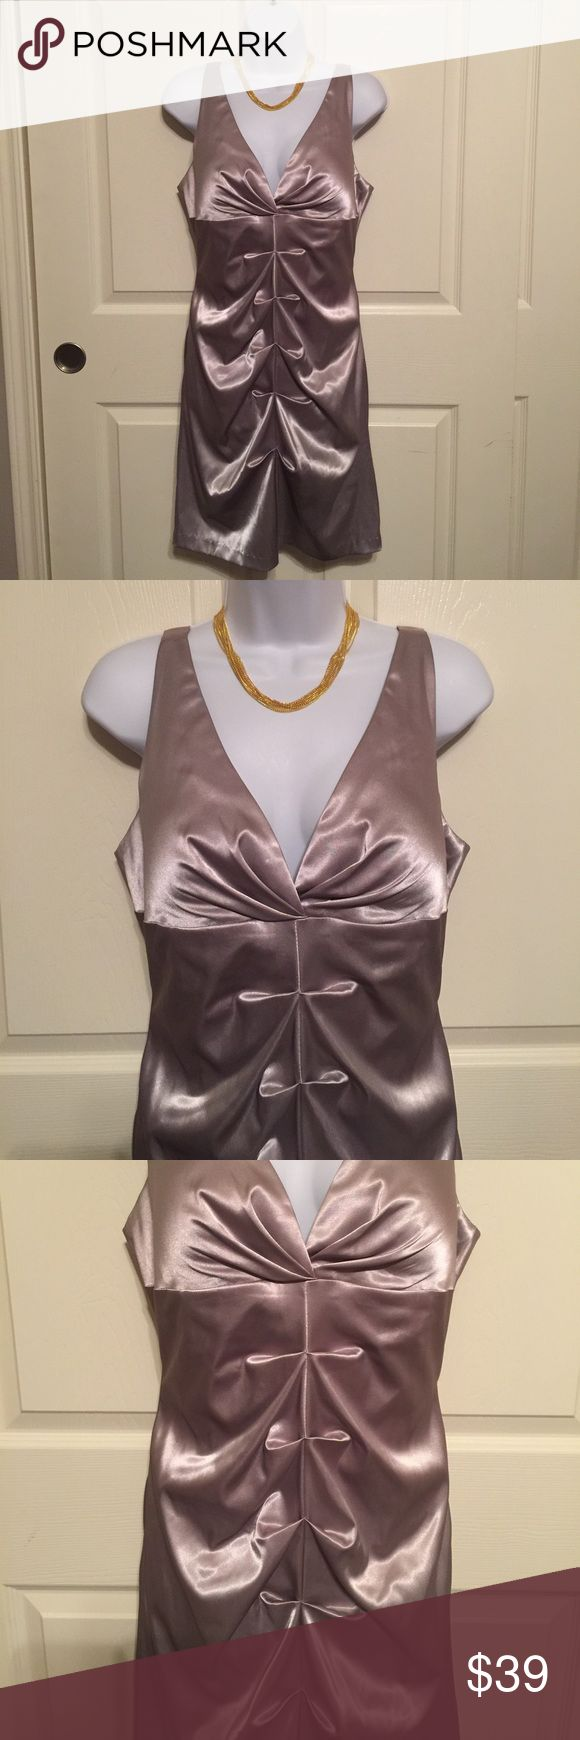 Onyx tan gray silver shinny night out dress 14P Onyx tan gray silver shiny soft body con night out dress. Size 14 petite. Made in the USA. Women's Ladies Fashion.  Pre-loved in excellent condition. Check out my closet, we have a variety of Victoria Secret, Bath and Body Works, handbags 👜 purse 👛 Aerosoles, shoes 👠fashion jewelry, women's clothing, Beauty products, home 🏡 decors & more...  Ships via USPS.  Always a FREE GIFT 🎁 with every purchase!!! Thank you. Onyx Dresses Mini